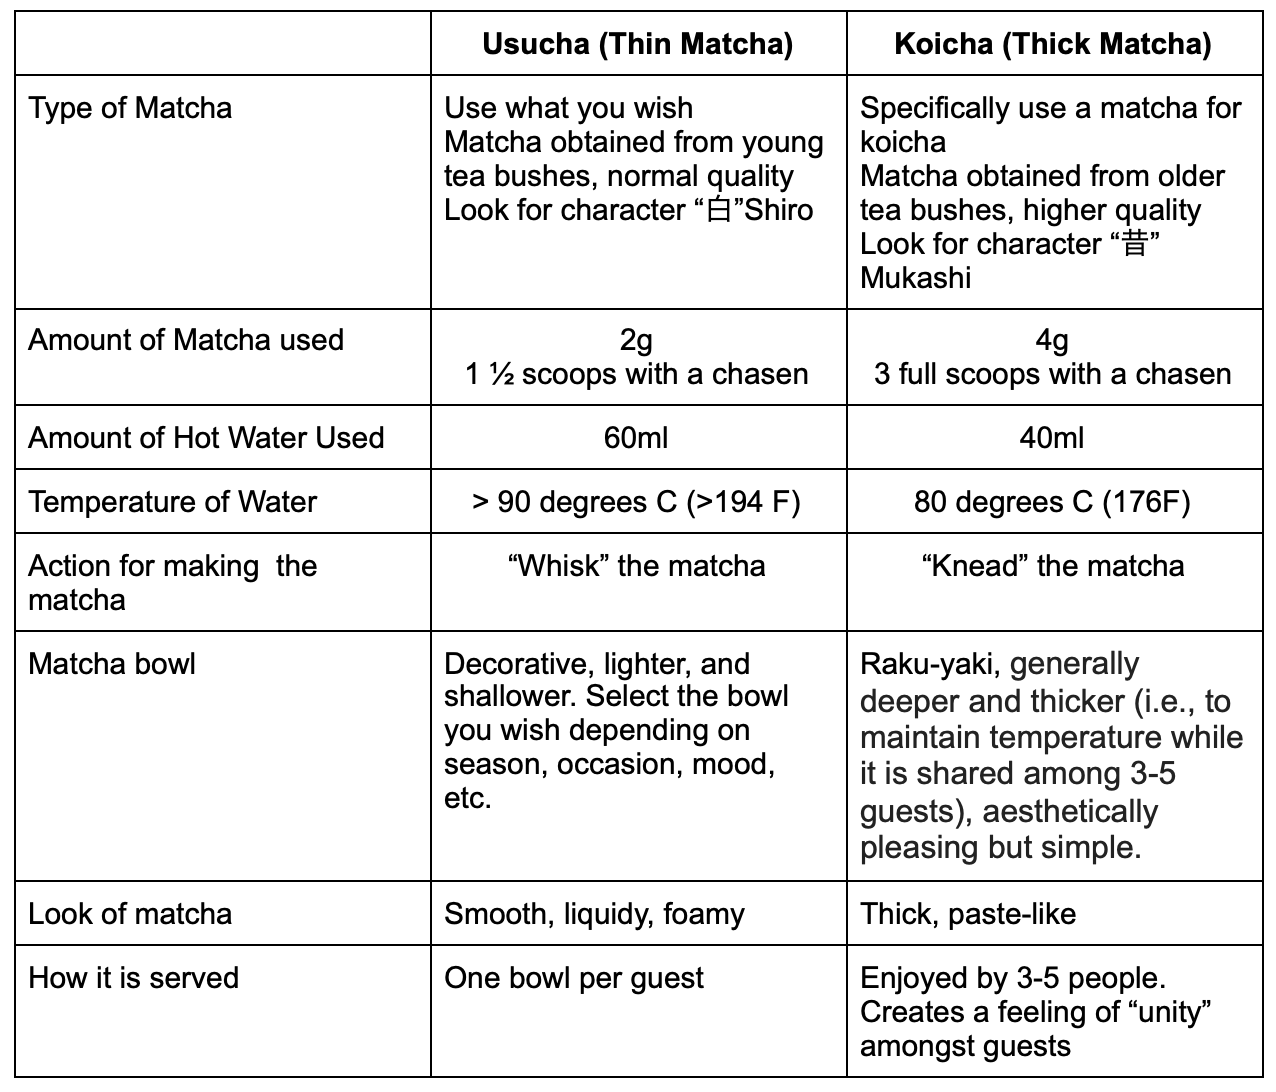 Tabla Koicha vs Usucha